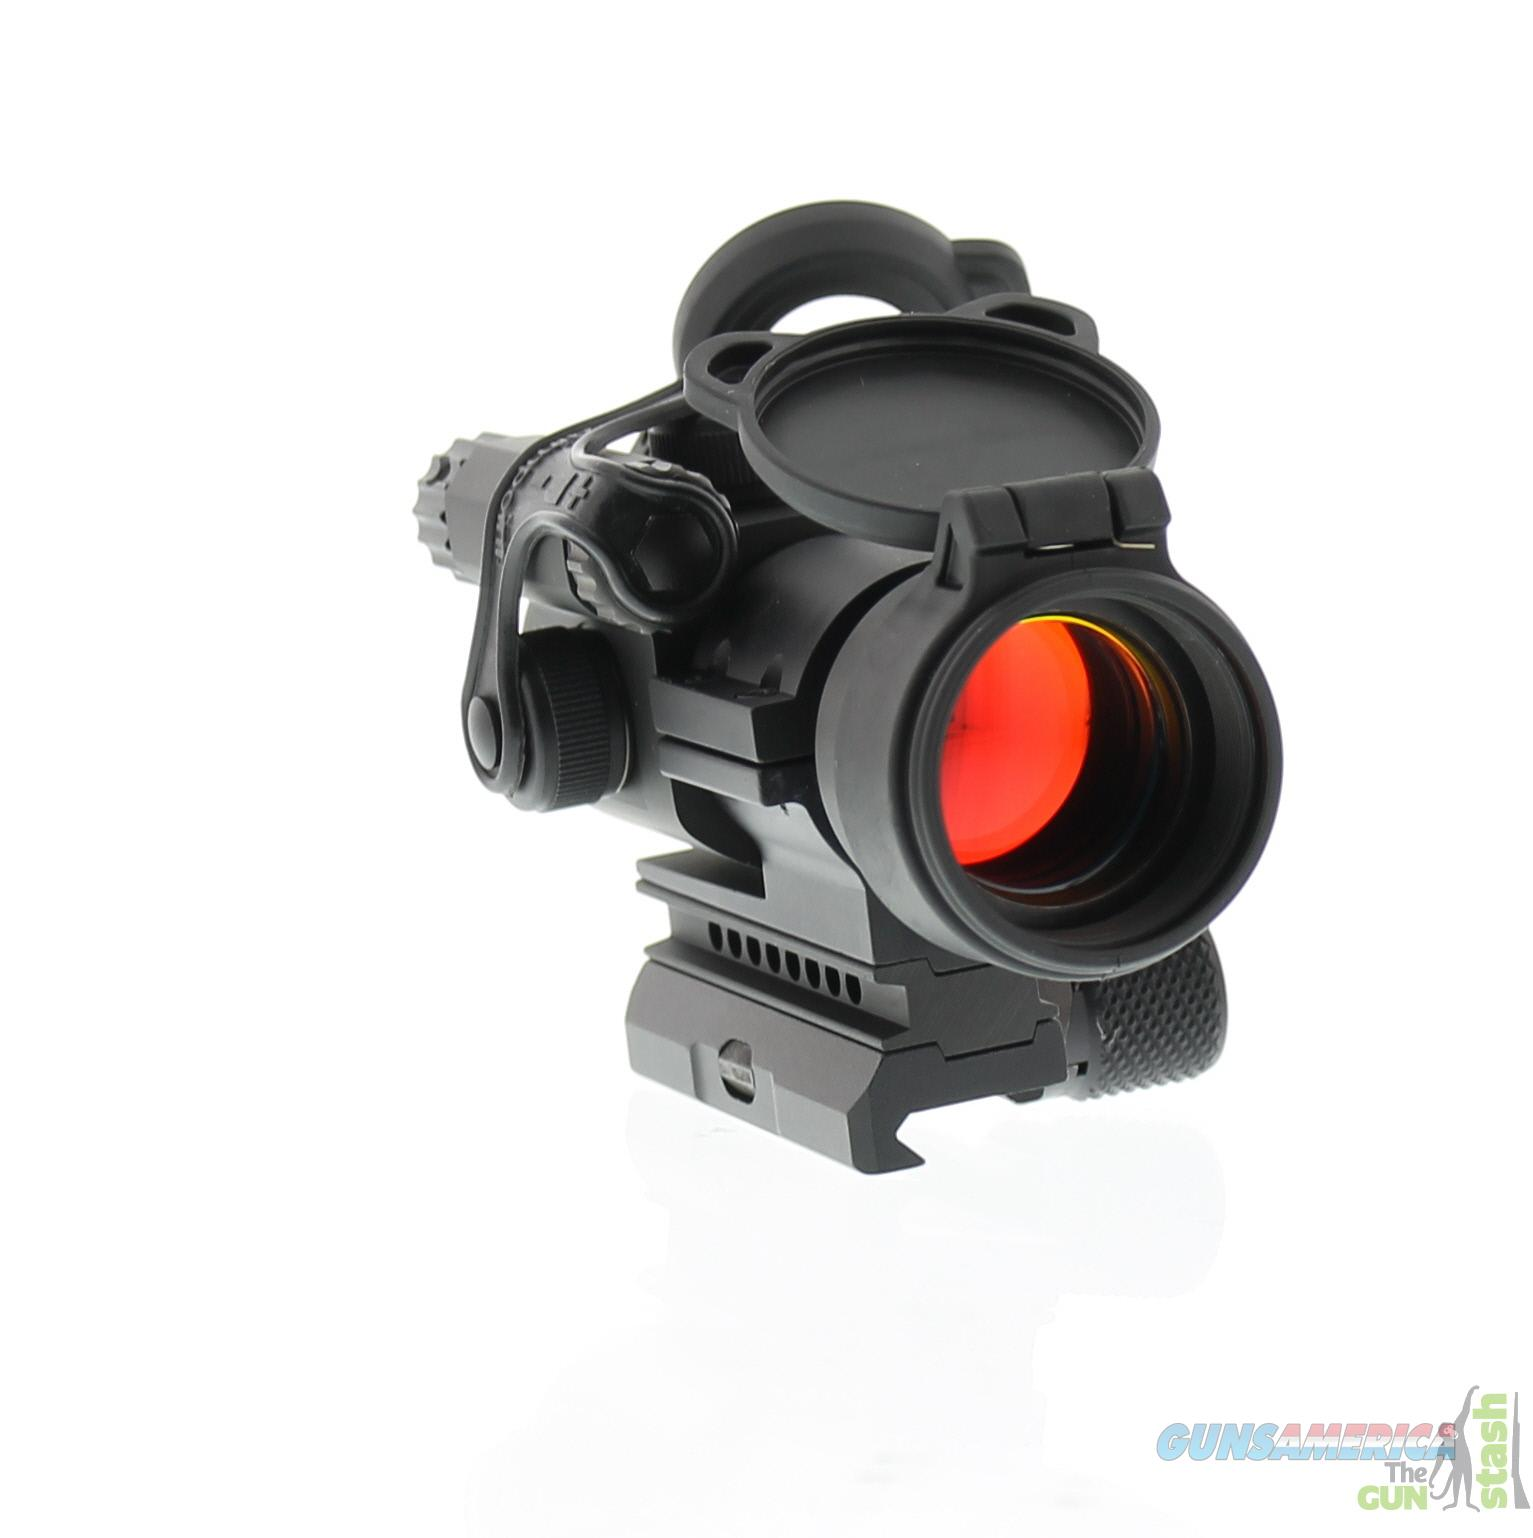 Aimpoint Patrol Rifle Optic  Non-Guns > Scopes/Mounts/Rings & Optics > Tactical Scopes > Red Dot